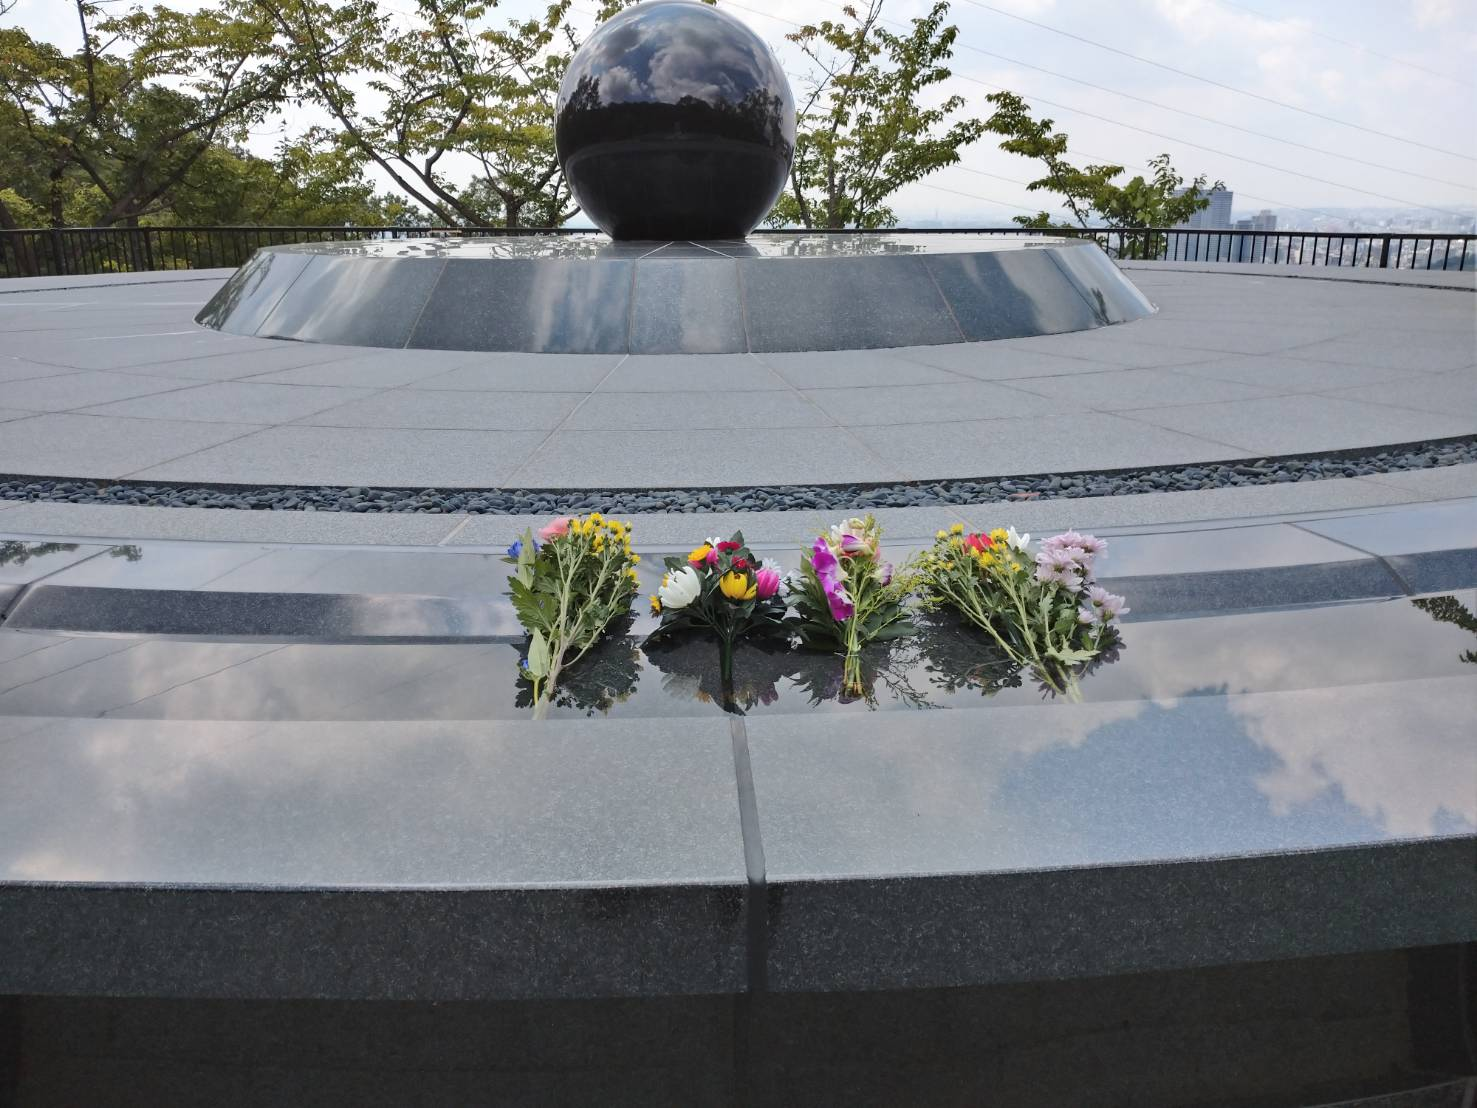 Photograph of flowers placed on a monument.